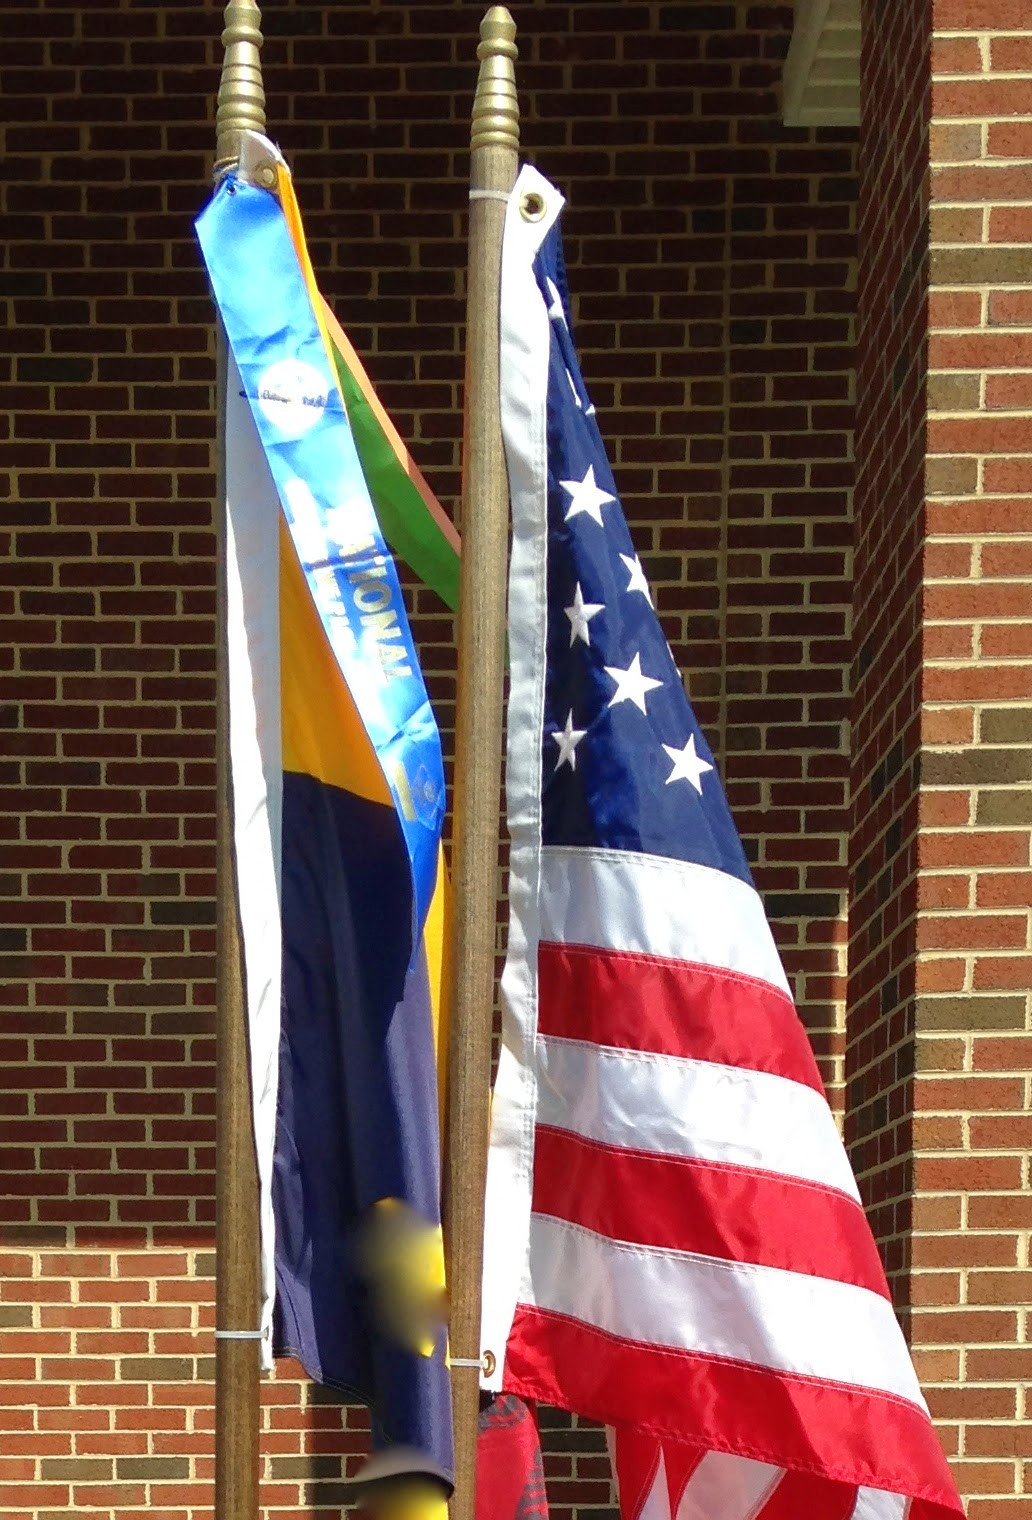 Best ideas about DIY Flag Pole . Save or Pin 1001 Goals DIY Flagpoles and Stand Cub Scouts Now.